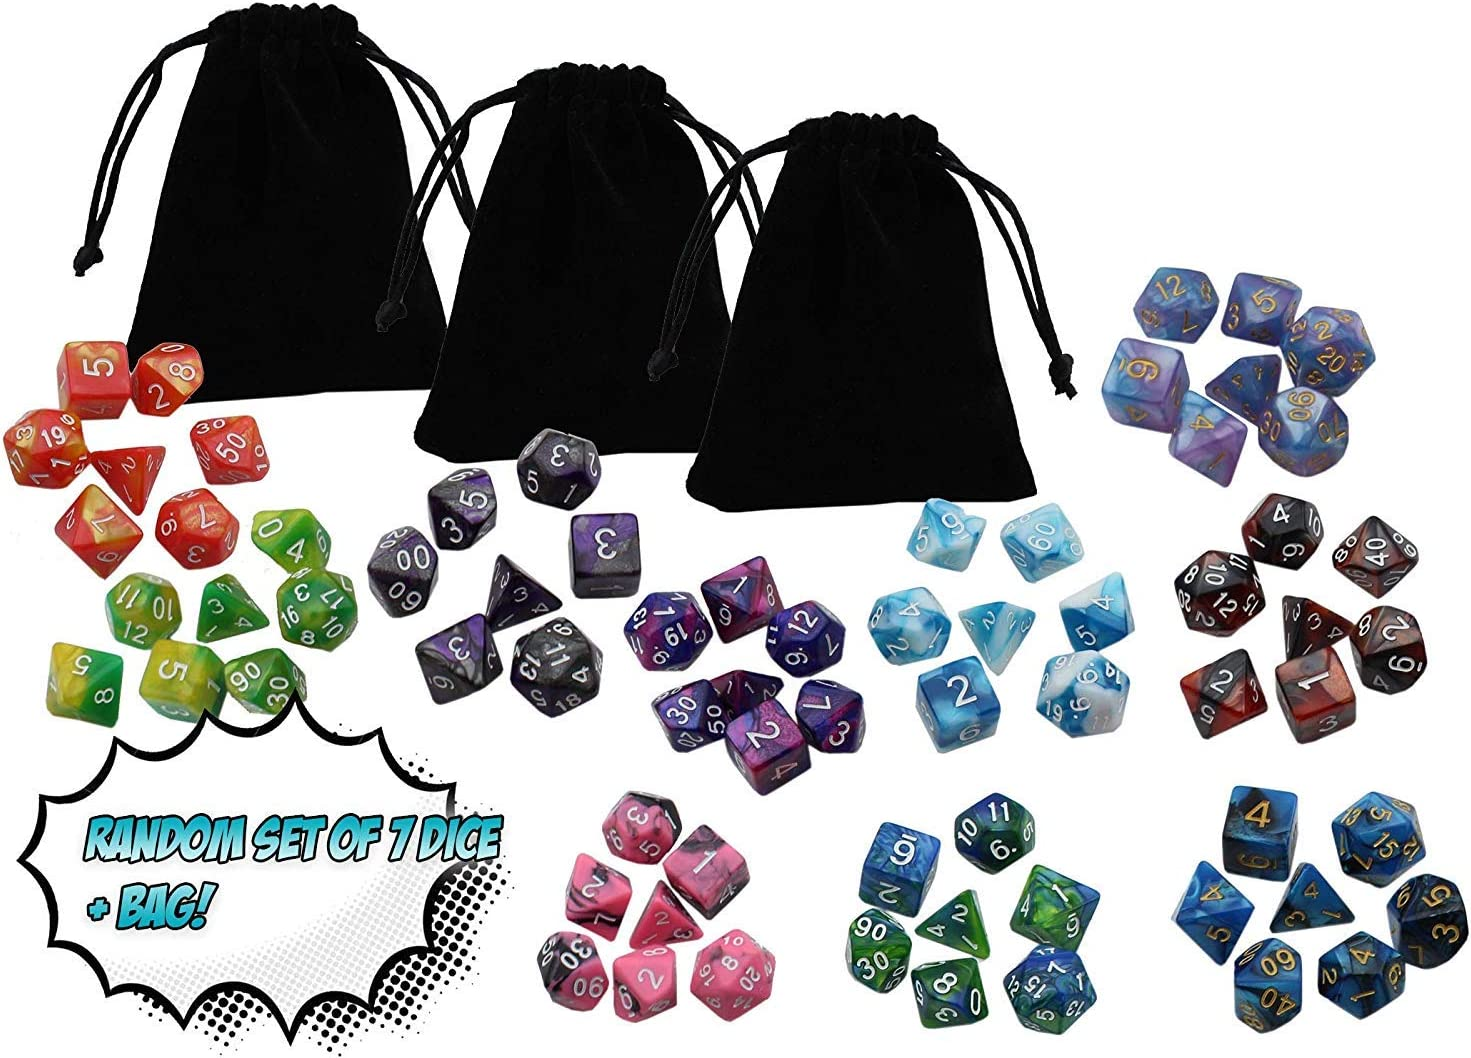 D/&D Tabletop Roleplaying Game Adventure Boxed Set Rick /& Morty Dungeons and Dragons Vs with 4 Random Set of 7 Dice Bundle by Golden Groundhog!